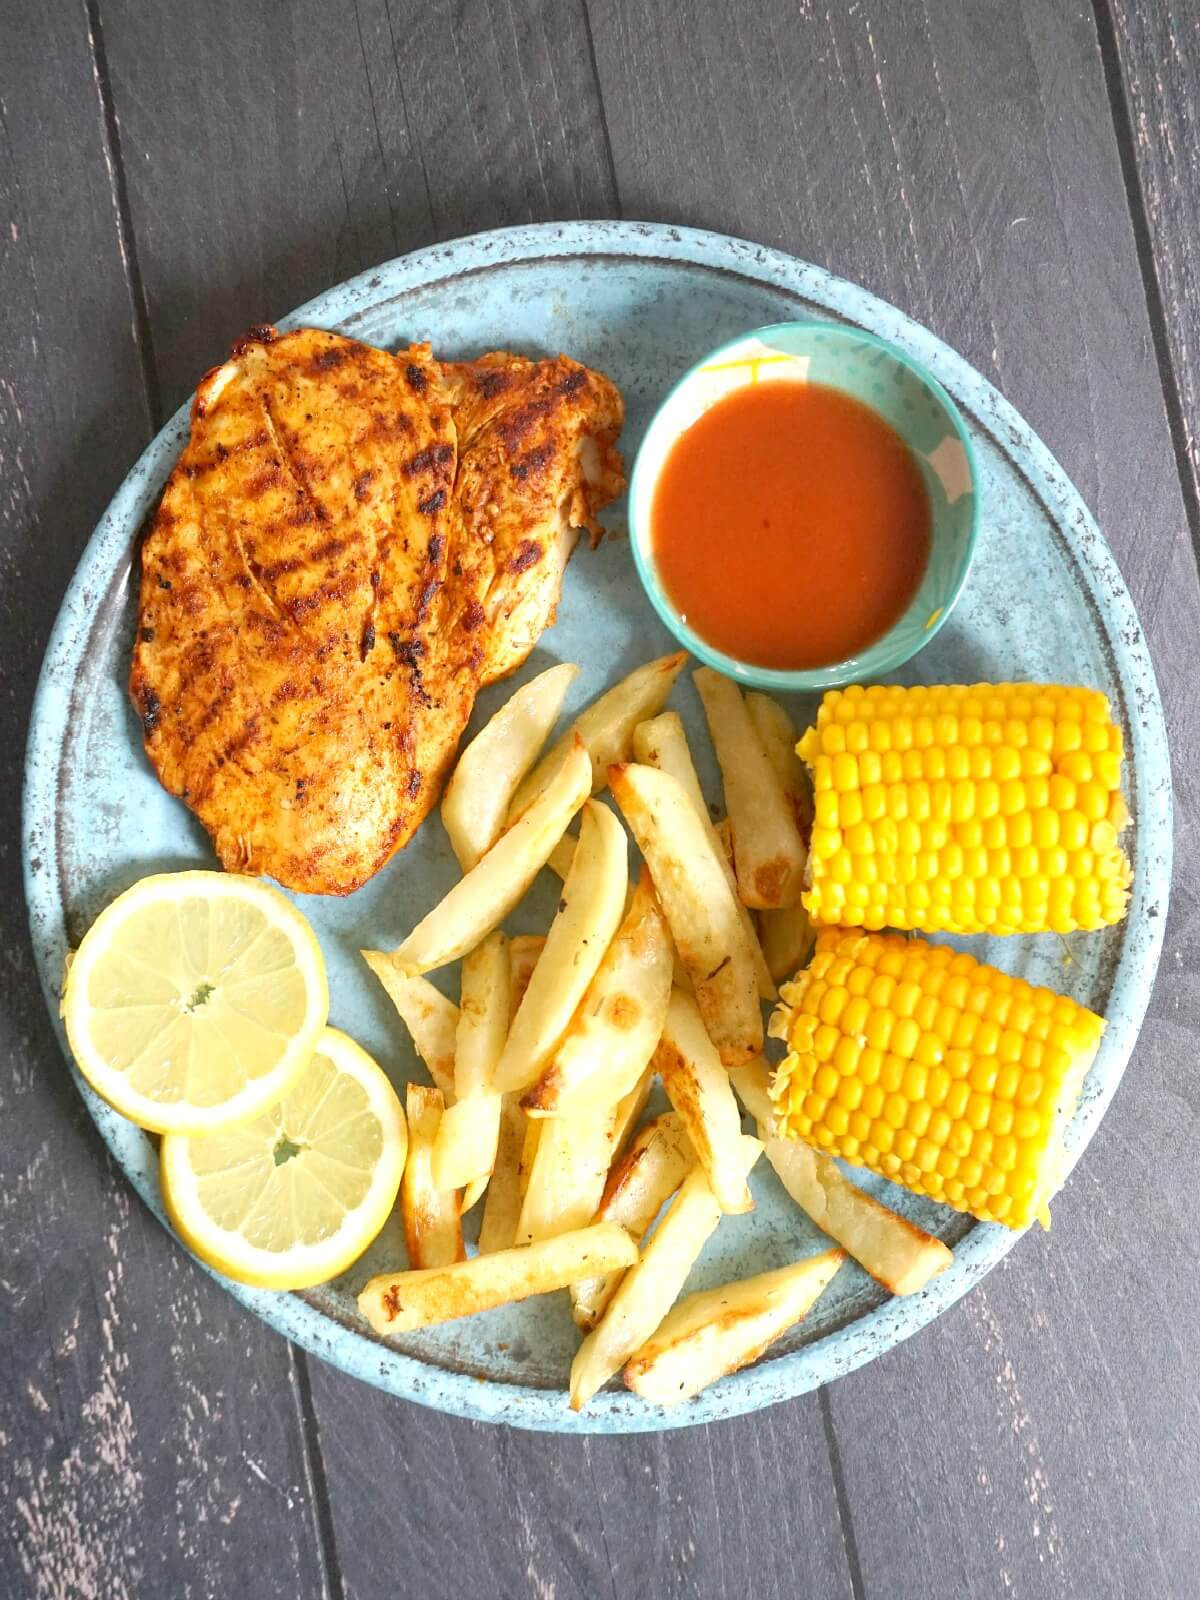 Overhead shoot of a blue plate with chicken breast, chips, 2 corns on the cob, 2 lemon slices and chilli sauce